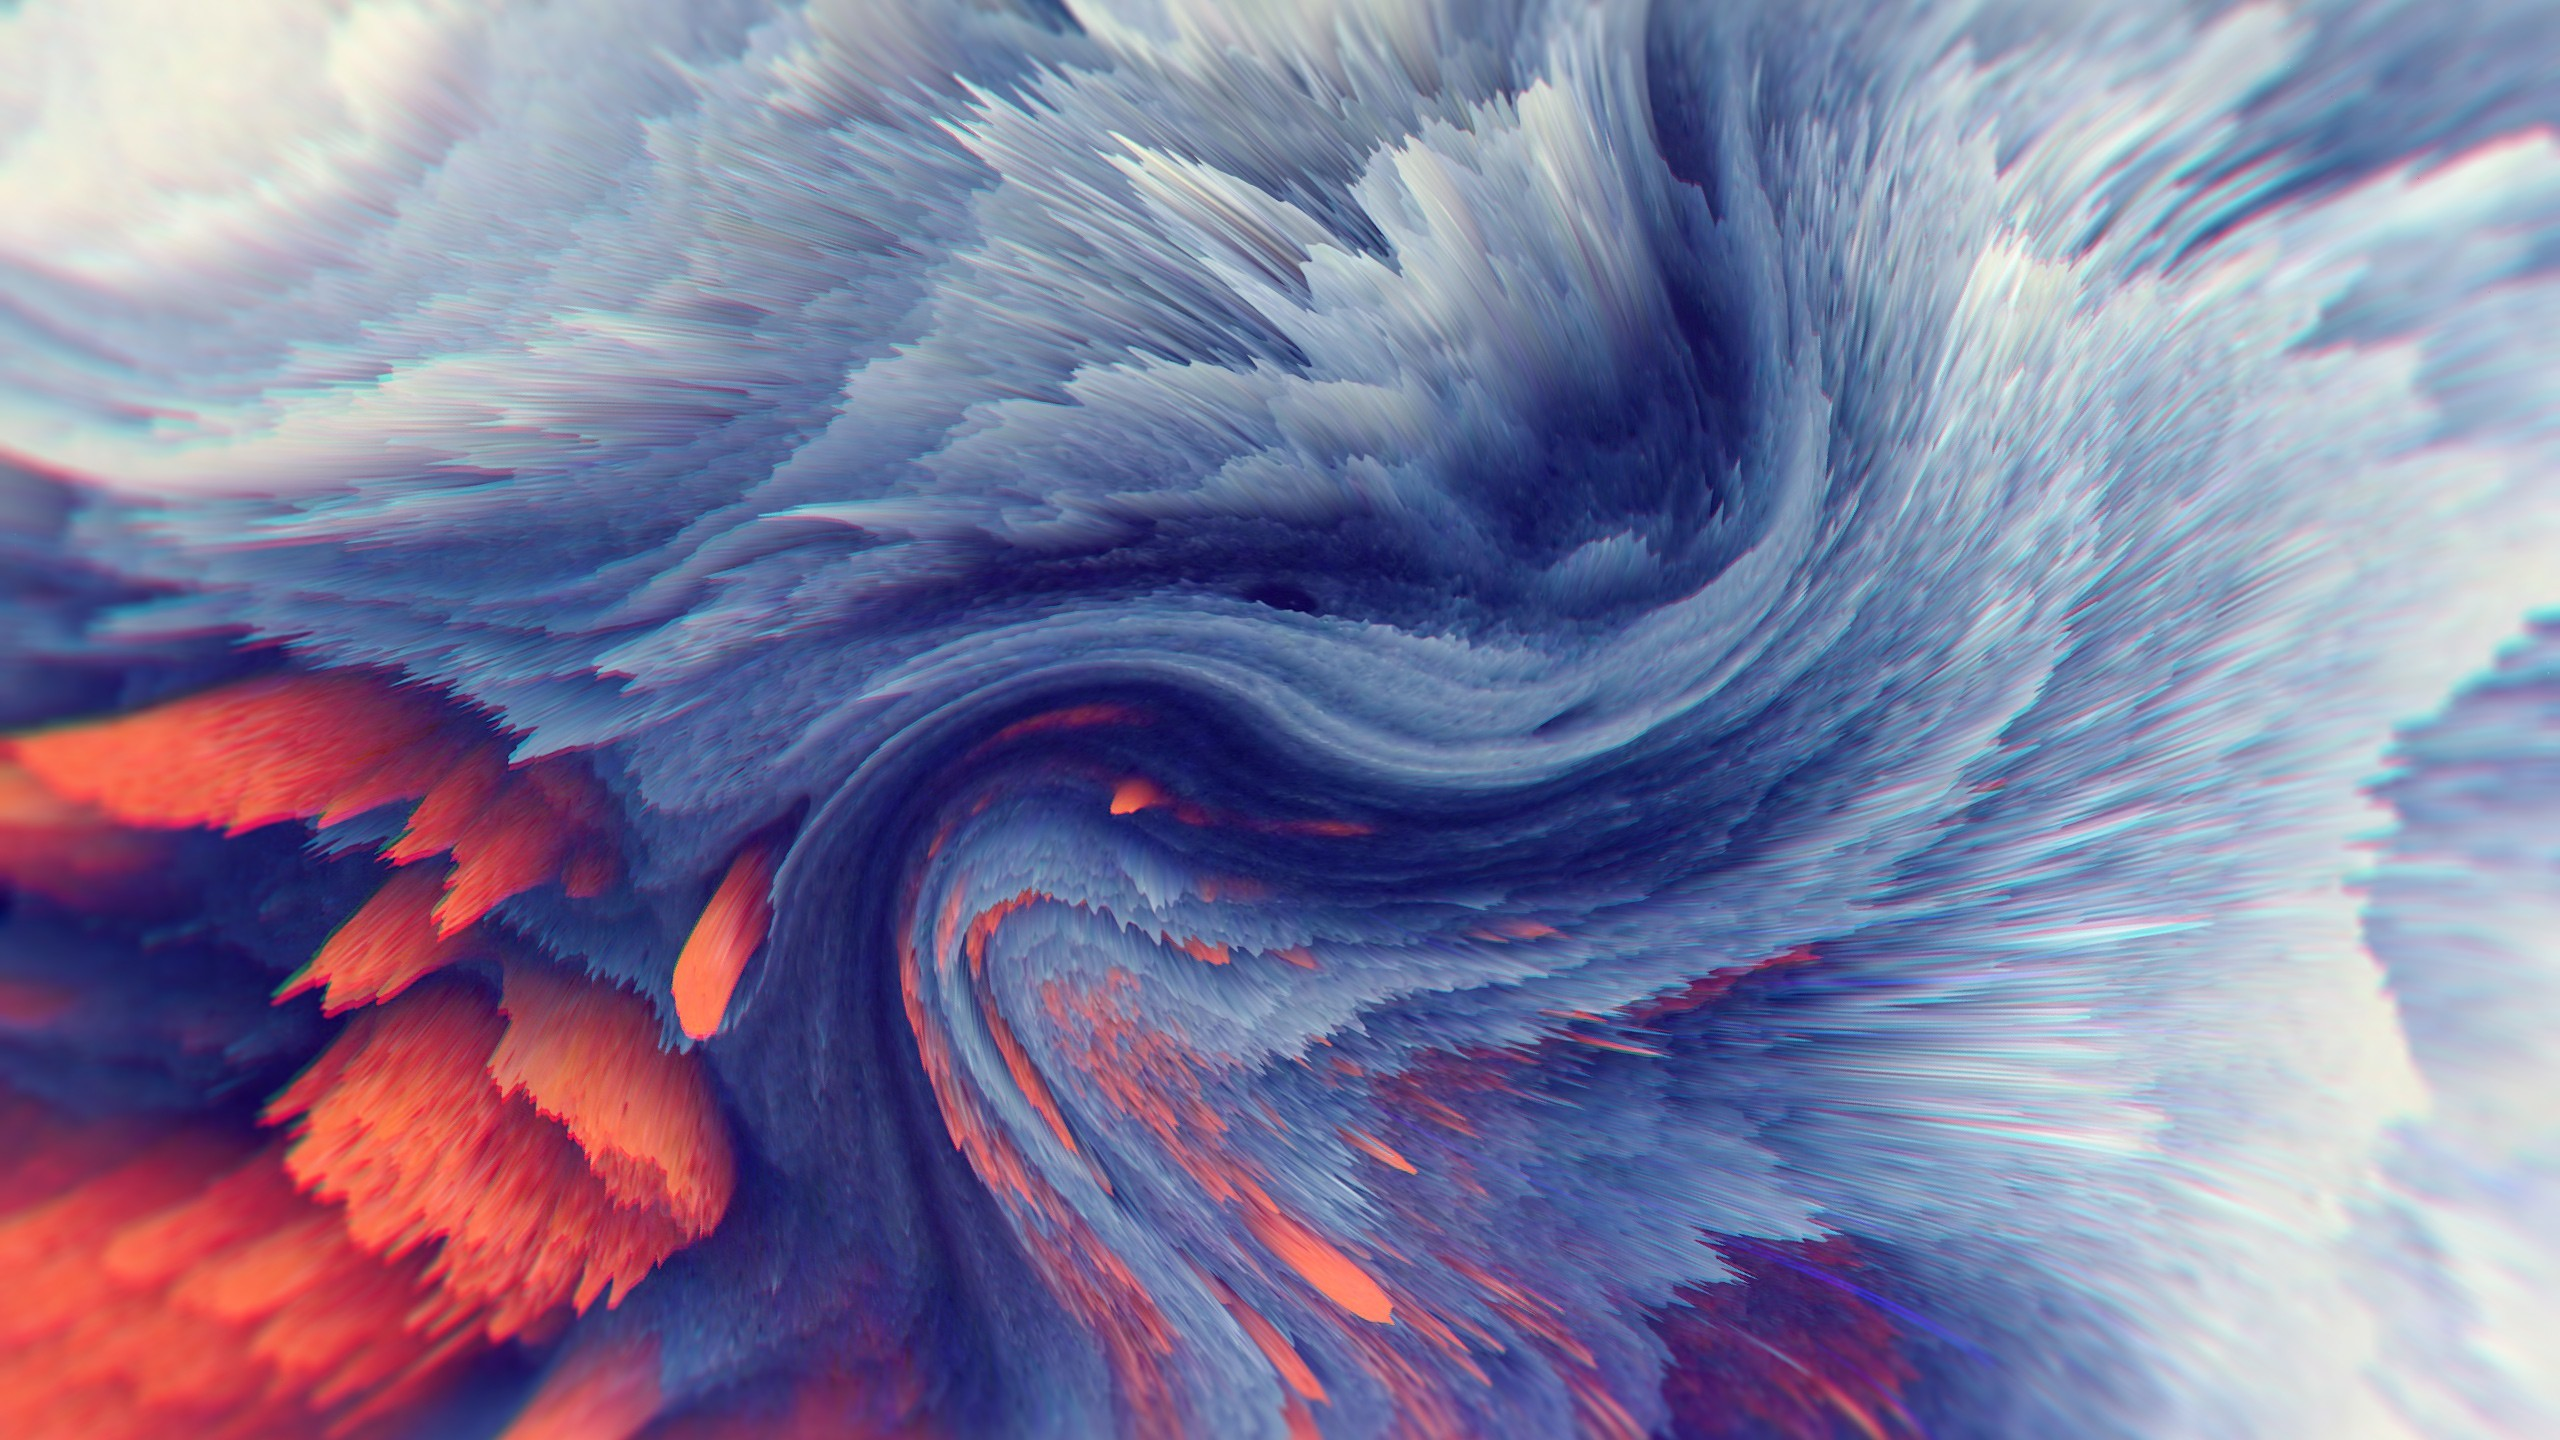 Wallpaper Waves HD Abstract 15377